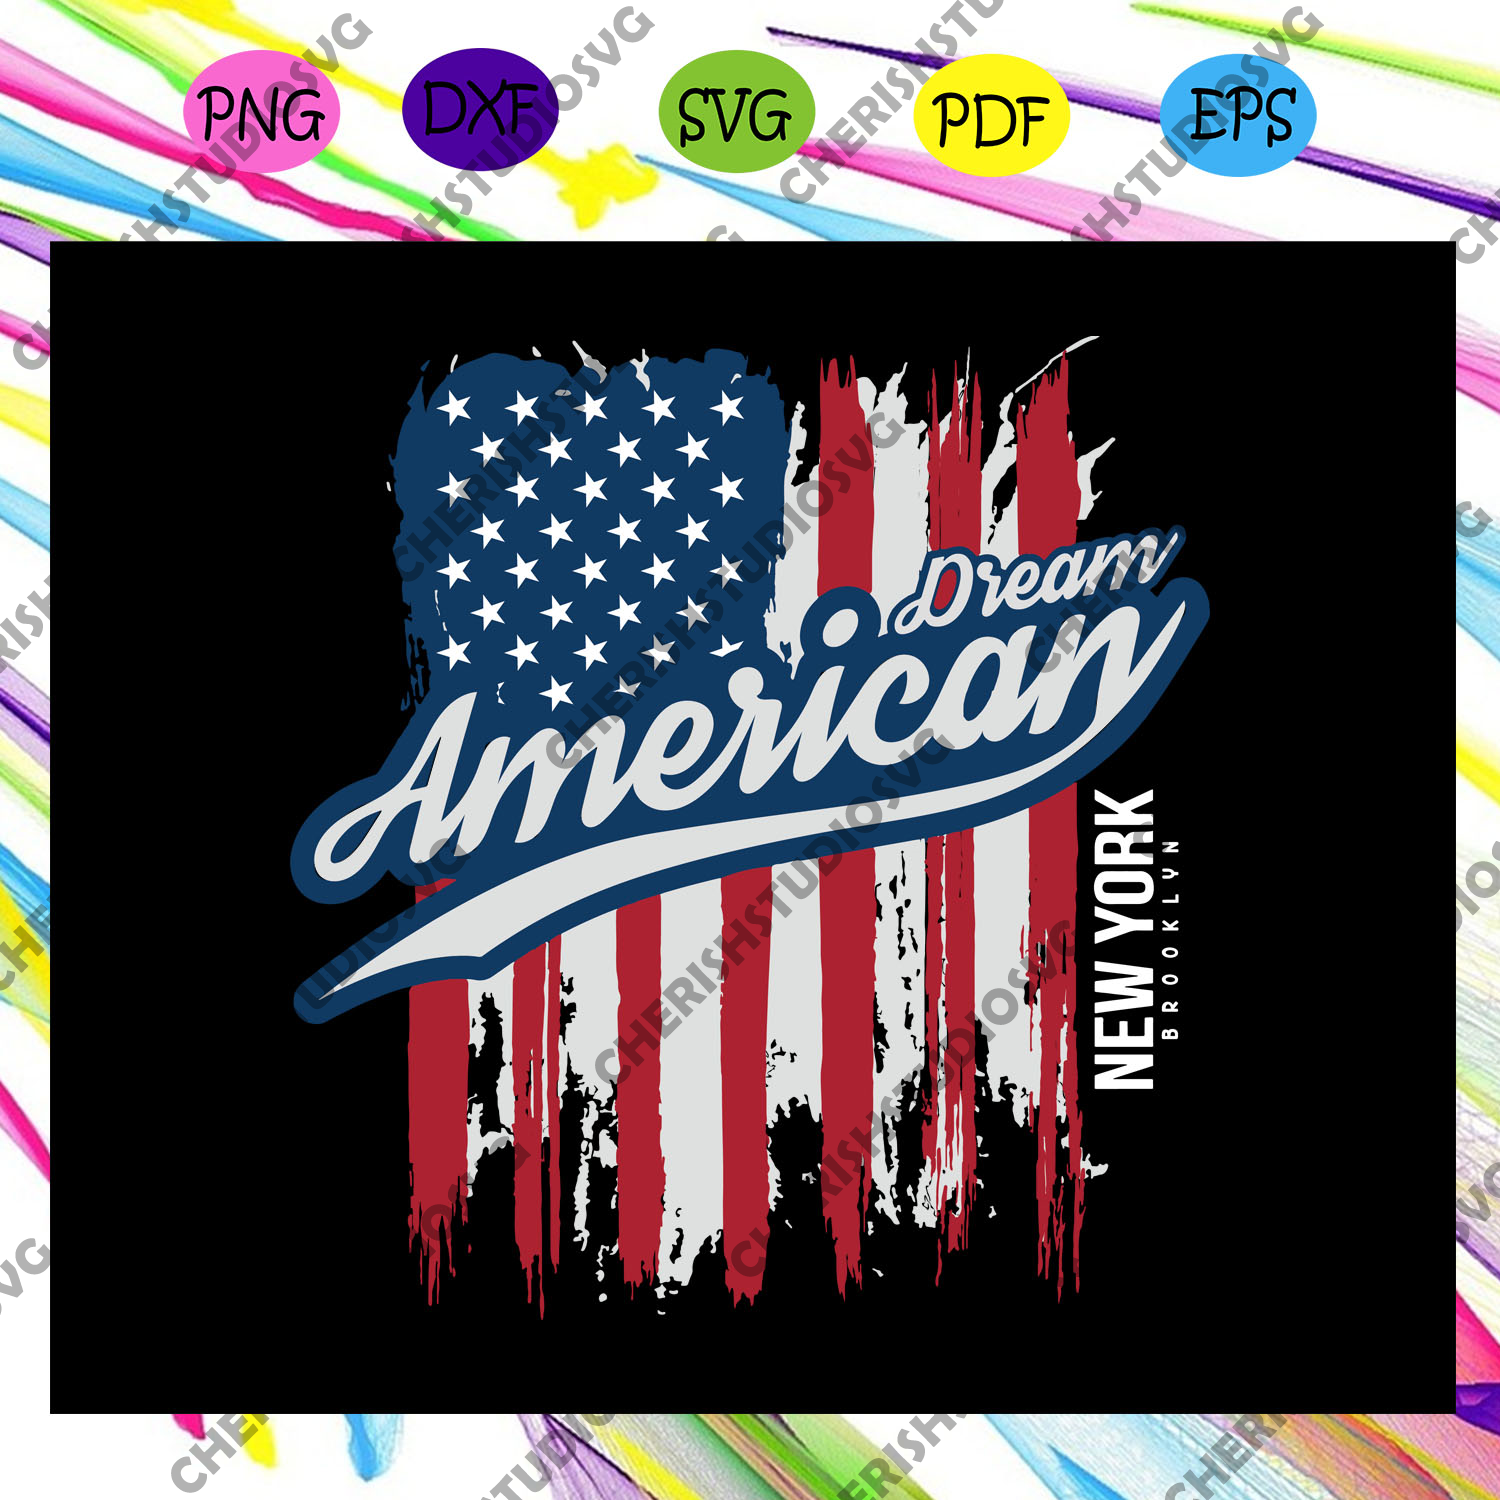 Dream american , New york brooklyn, brooklyn shirt, brooklyn svg, brooklyn gift, brooklyn festival, i love brooklyn ,trending svg Files For Silhouette, Files For Cricut, SVG, DXF, EPS, PNG, Instant Download